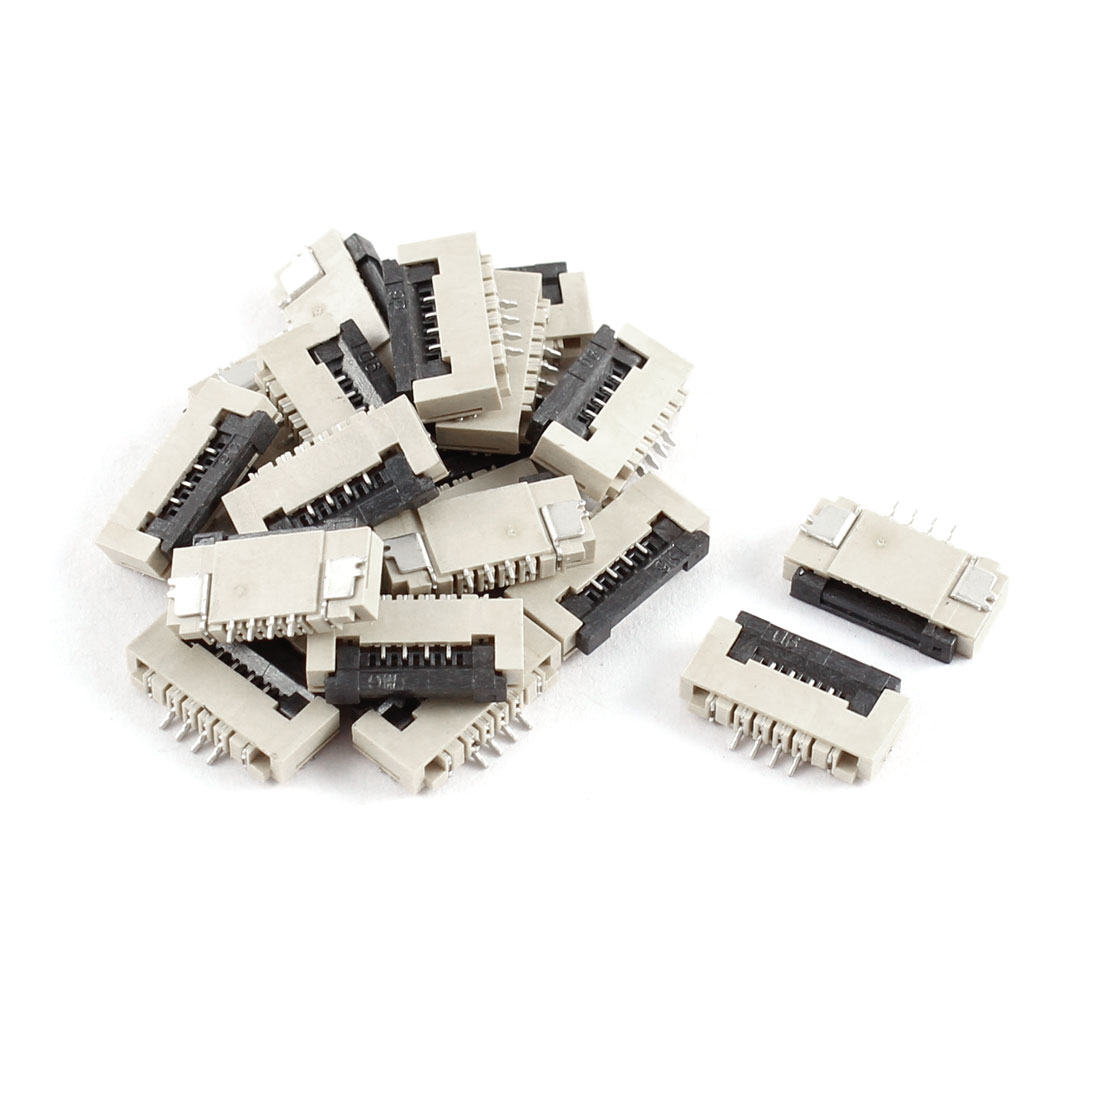 20Pcs Clamshell Type Bottom Port 4Pin 1.0mm Pitch FFC FPC Sockets Connector